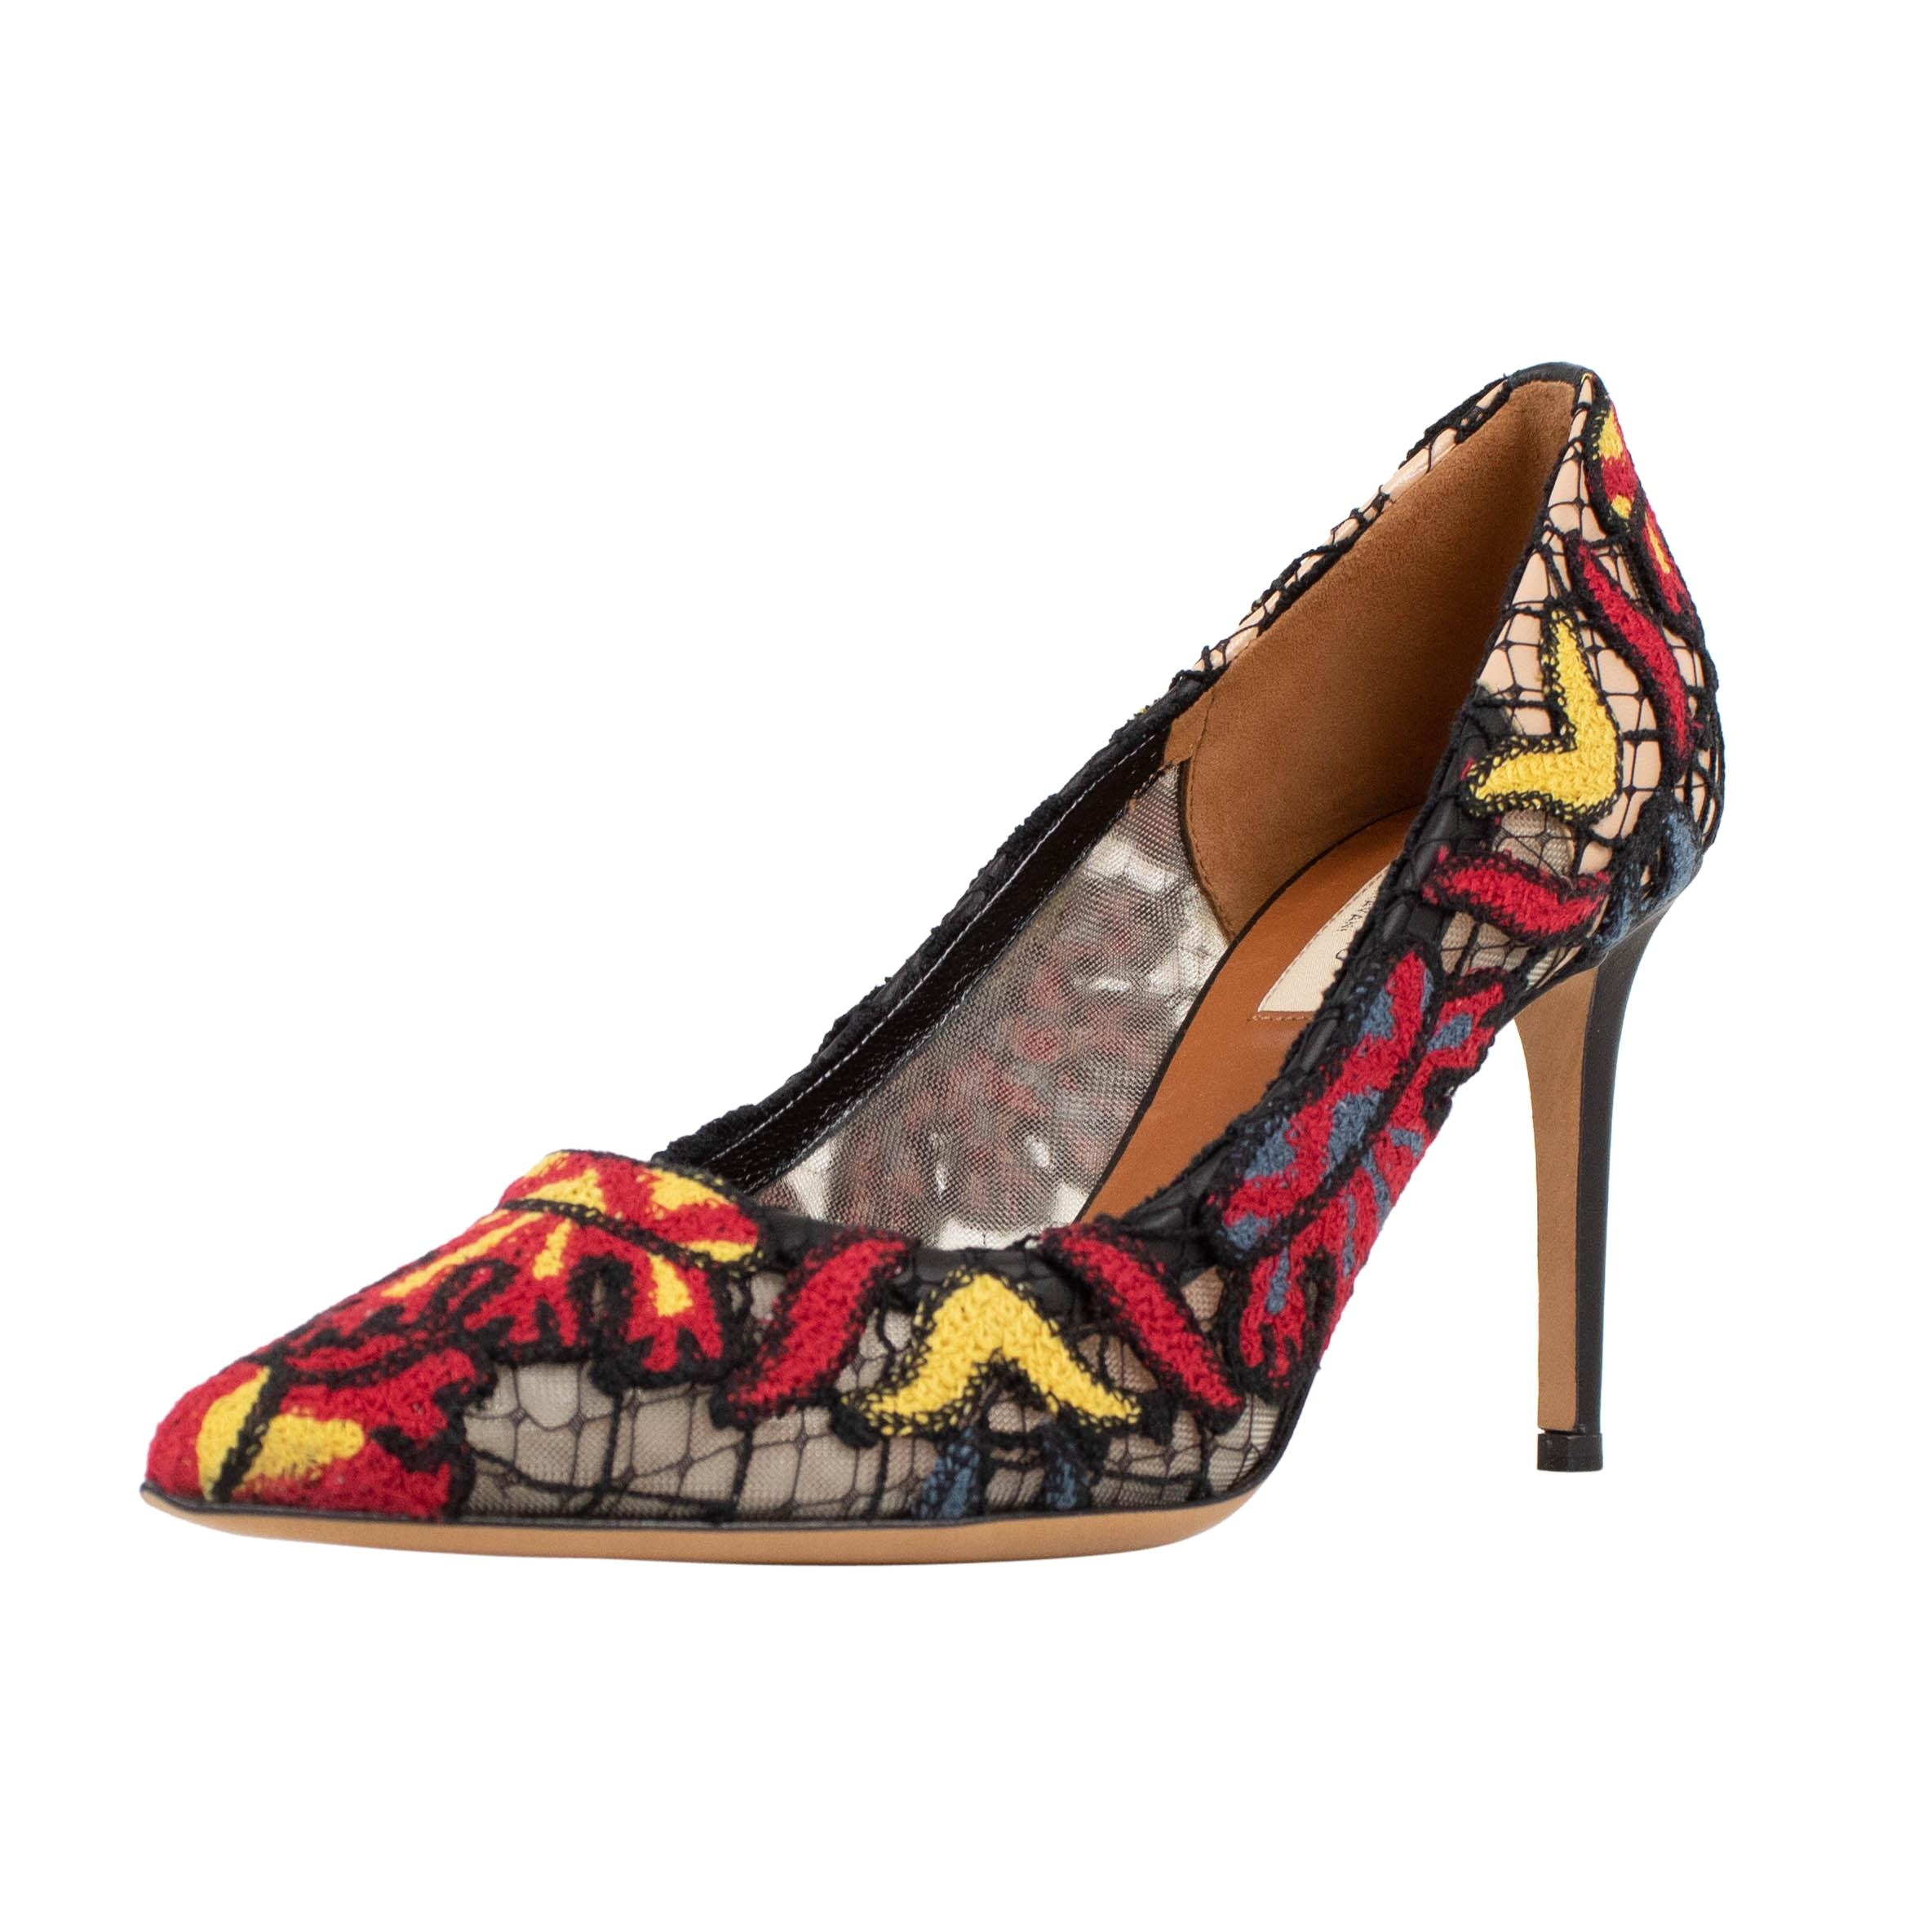 Valentino Multi-color Embroidered Mesh Pointed Pumps Size US 9 Regular (M, B)